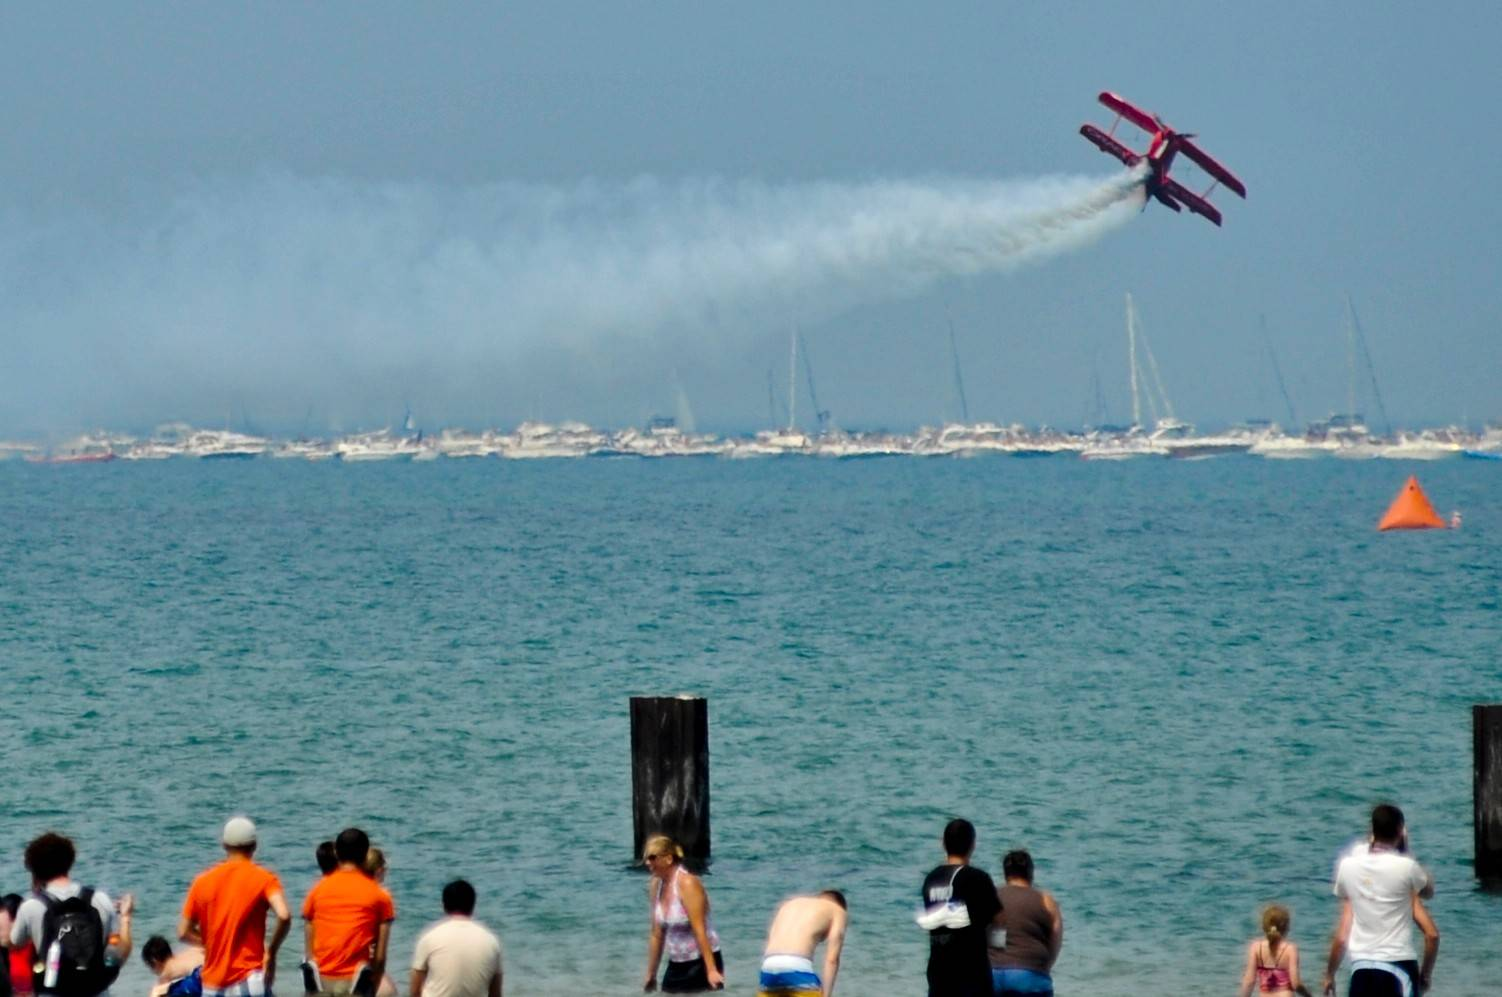 Sean D. Tucker and Team Oracle will soar over Lake Michigan this weekend at the Chicago Air and Water show.